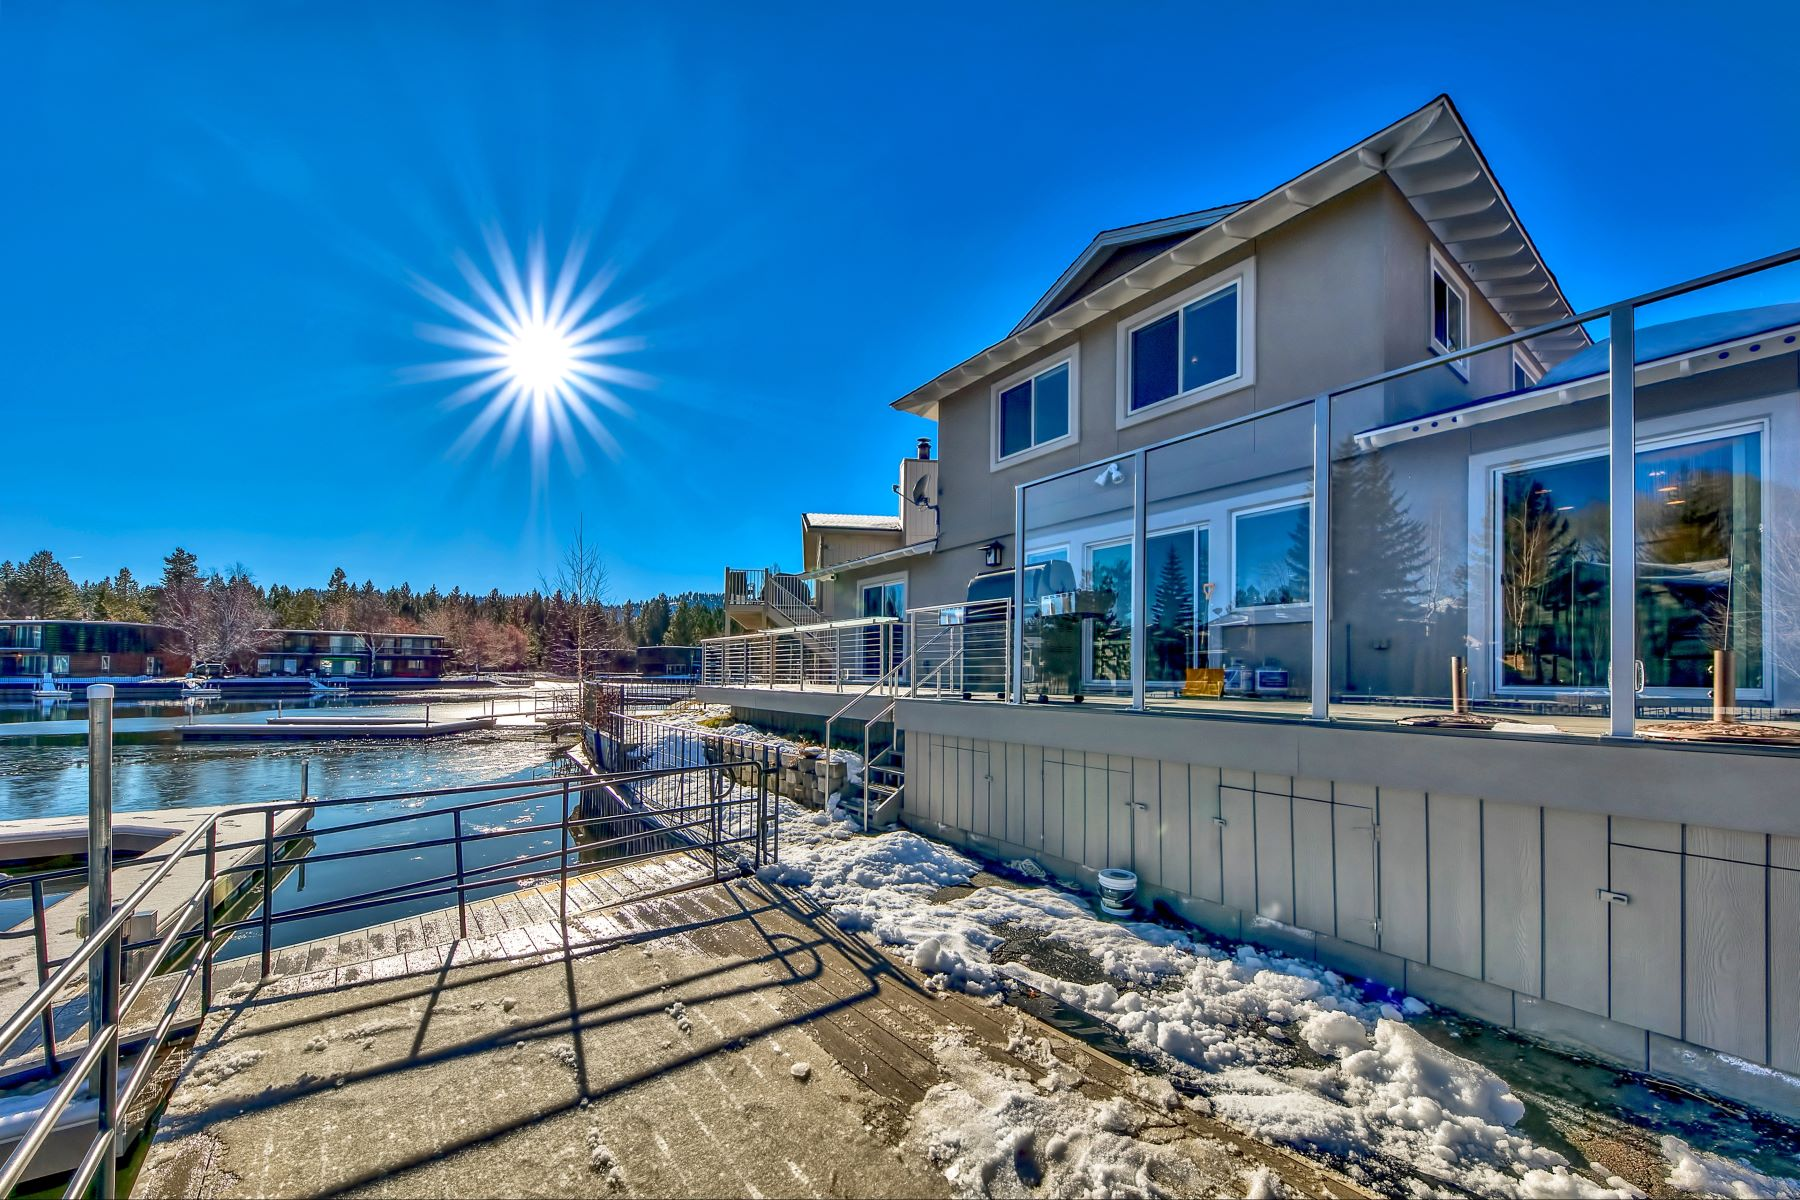 Additional photo for property listing at 2030 Garmish Ct,South Lake Tahoe, CA 96150 2030 Garmish Court South Lake Tahoe, California 96150 United States